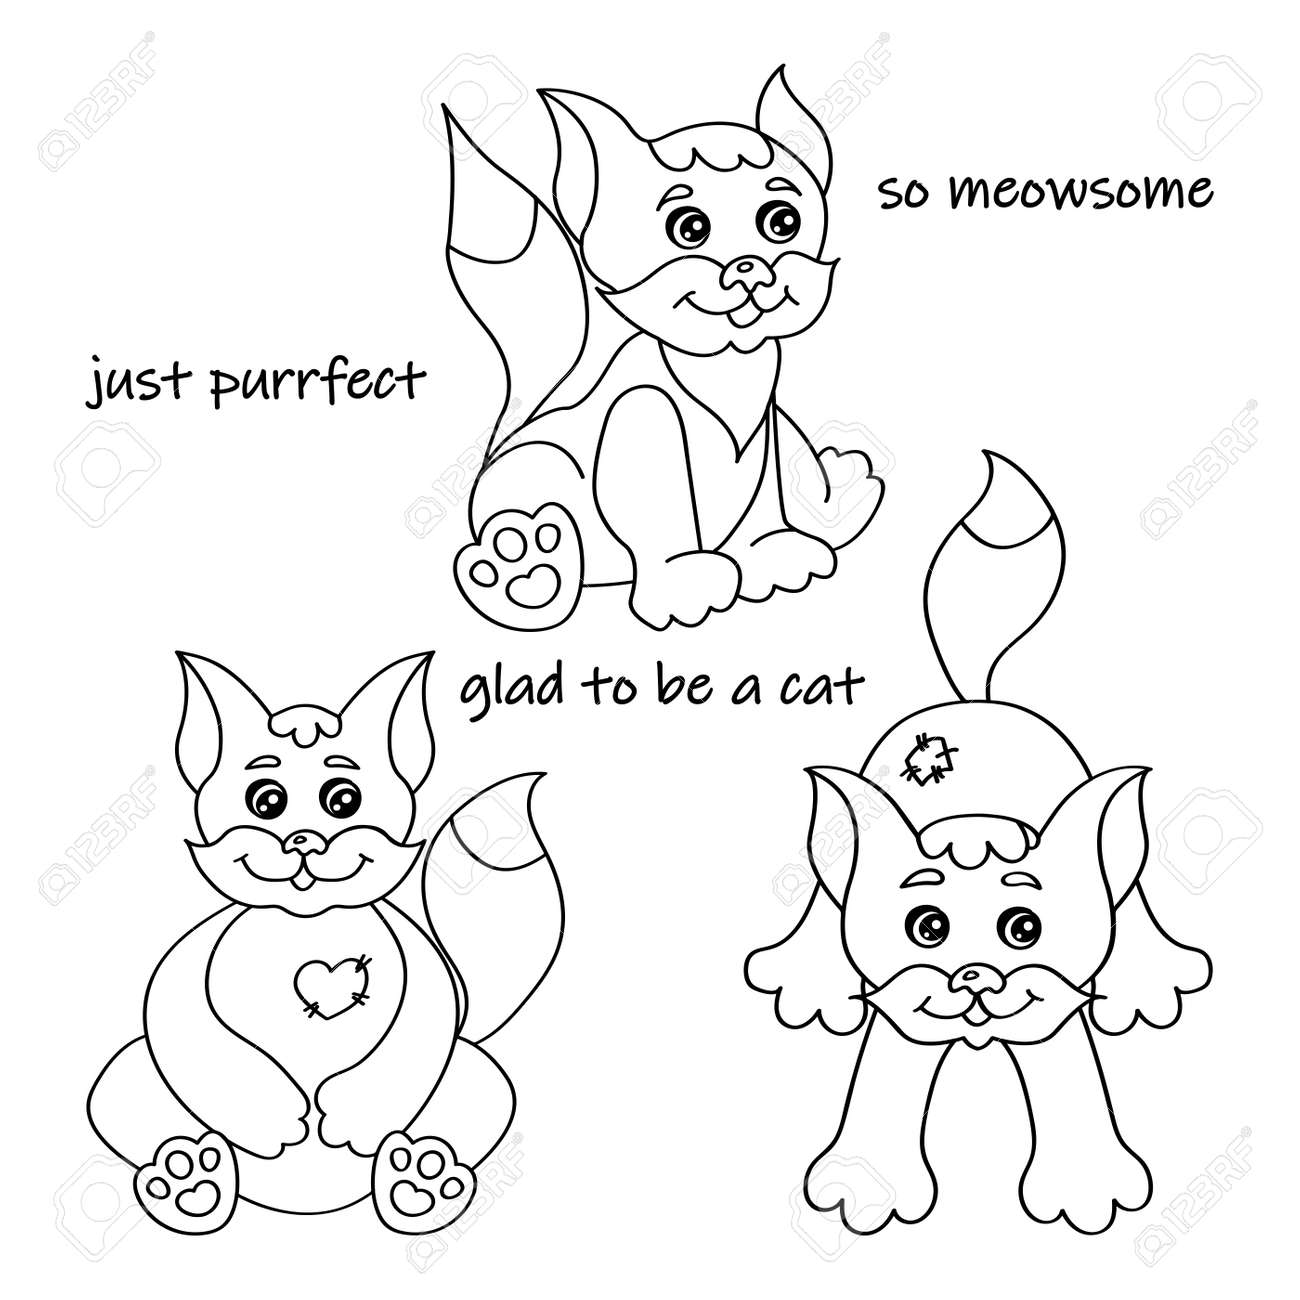 Set of nice cats silhouette for coloring book vector illustration - 166203437